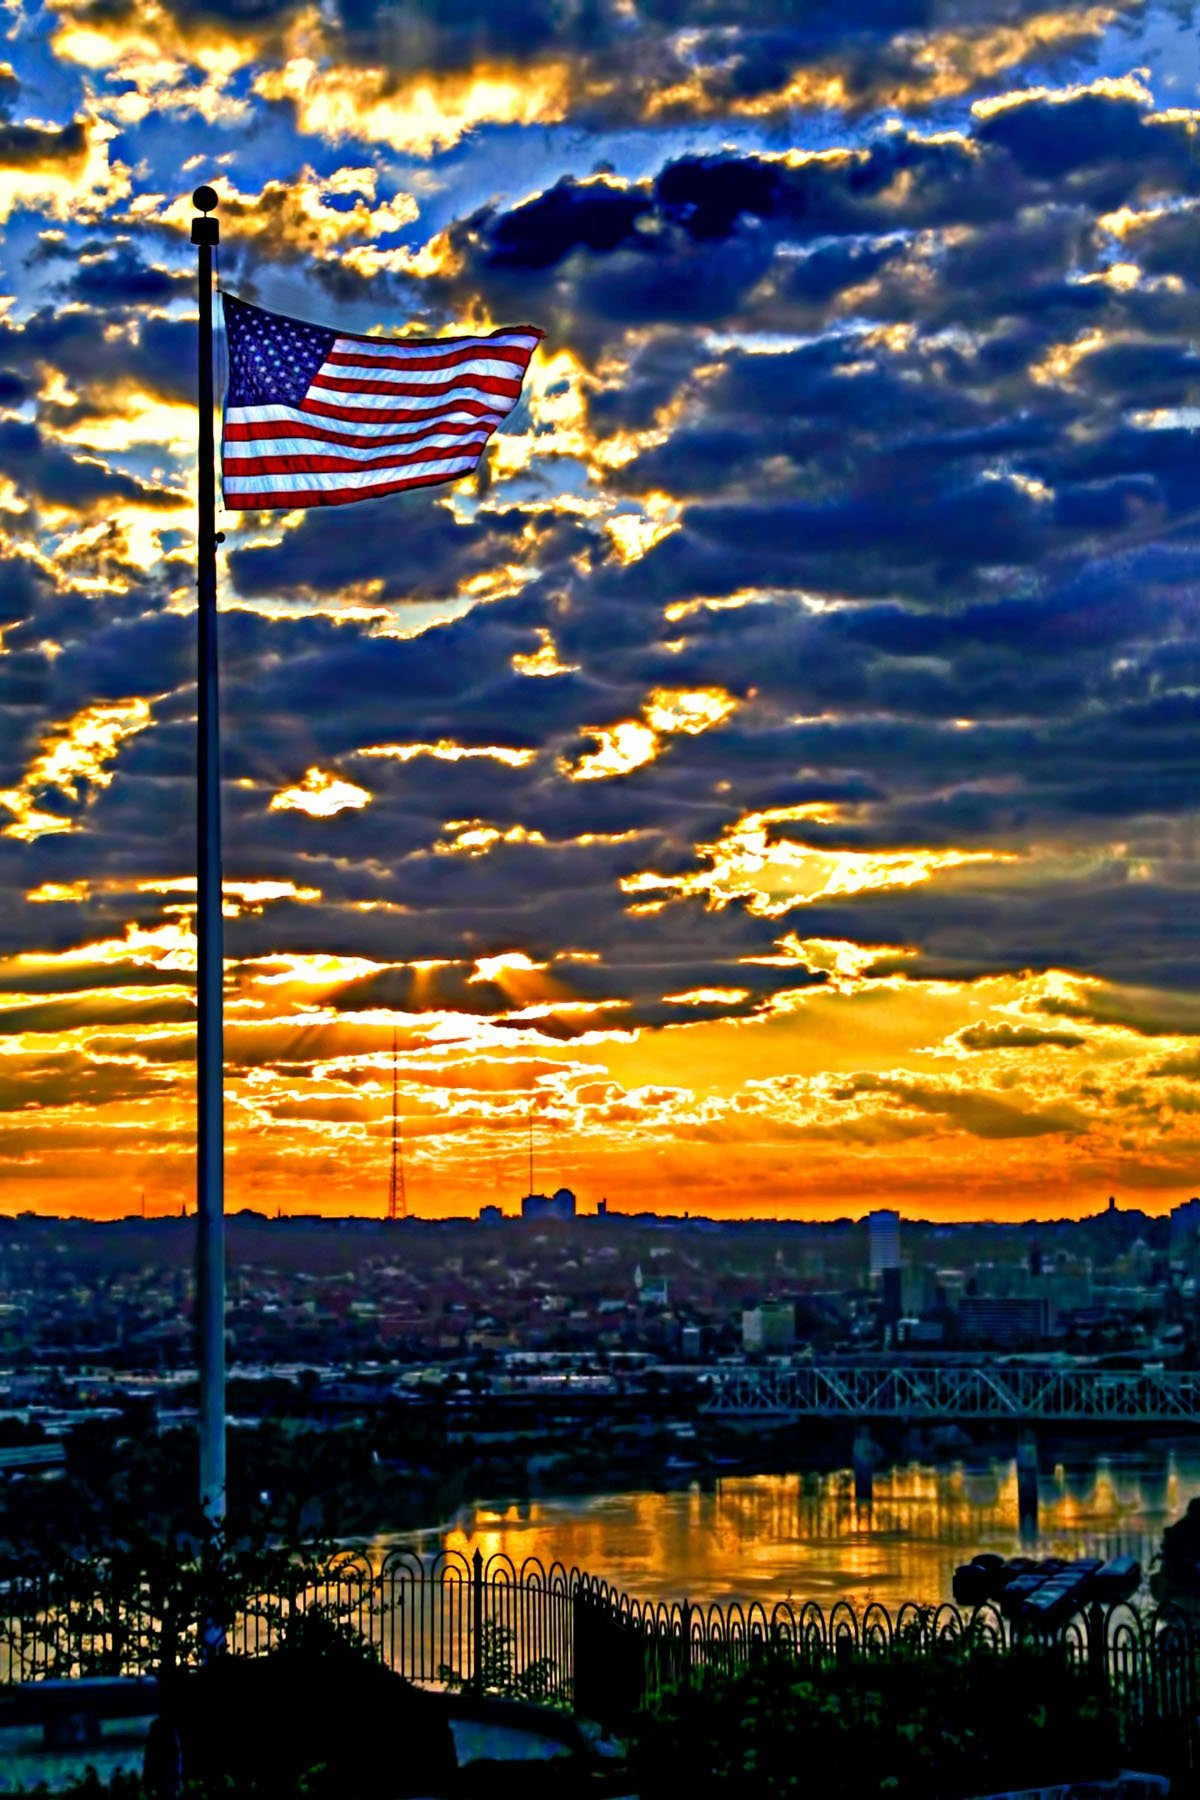 STAR SPANGLED BANNER - One of the best views of downtown Cincinnati, northern Kentucky and the Ohio River is from Mt. Echo Park. On this particular morning, all that was just the background. Glad to be an American!